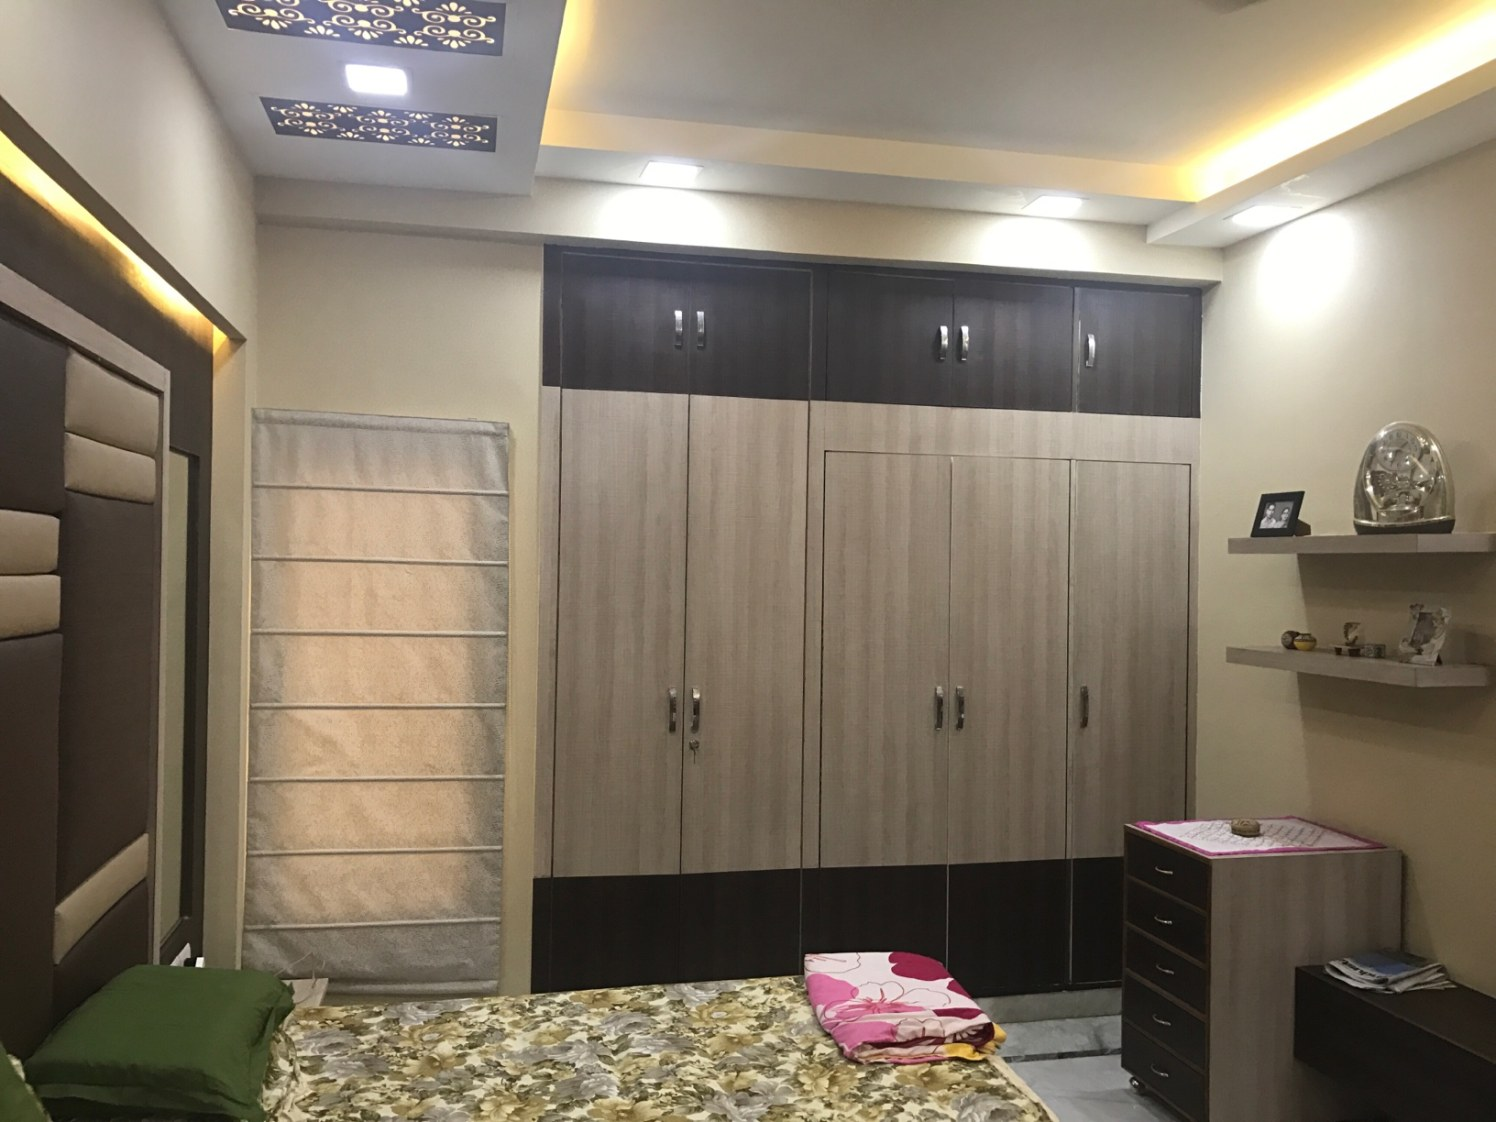 Sophisticated bedroom Space with Wooden Wardrobe and False Ceiling by Ar. Barkha Jain Bedroom Modern | Interior Design Photos & Ideas